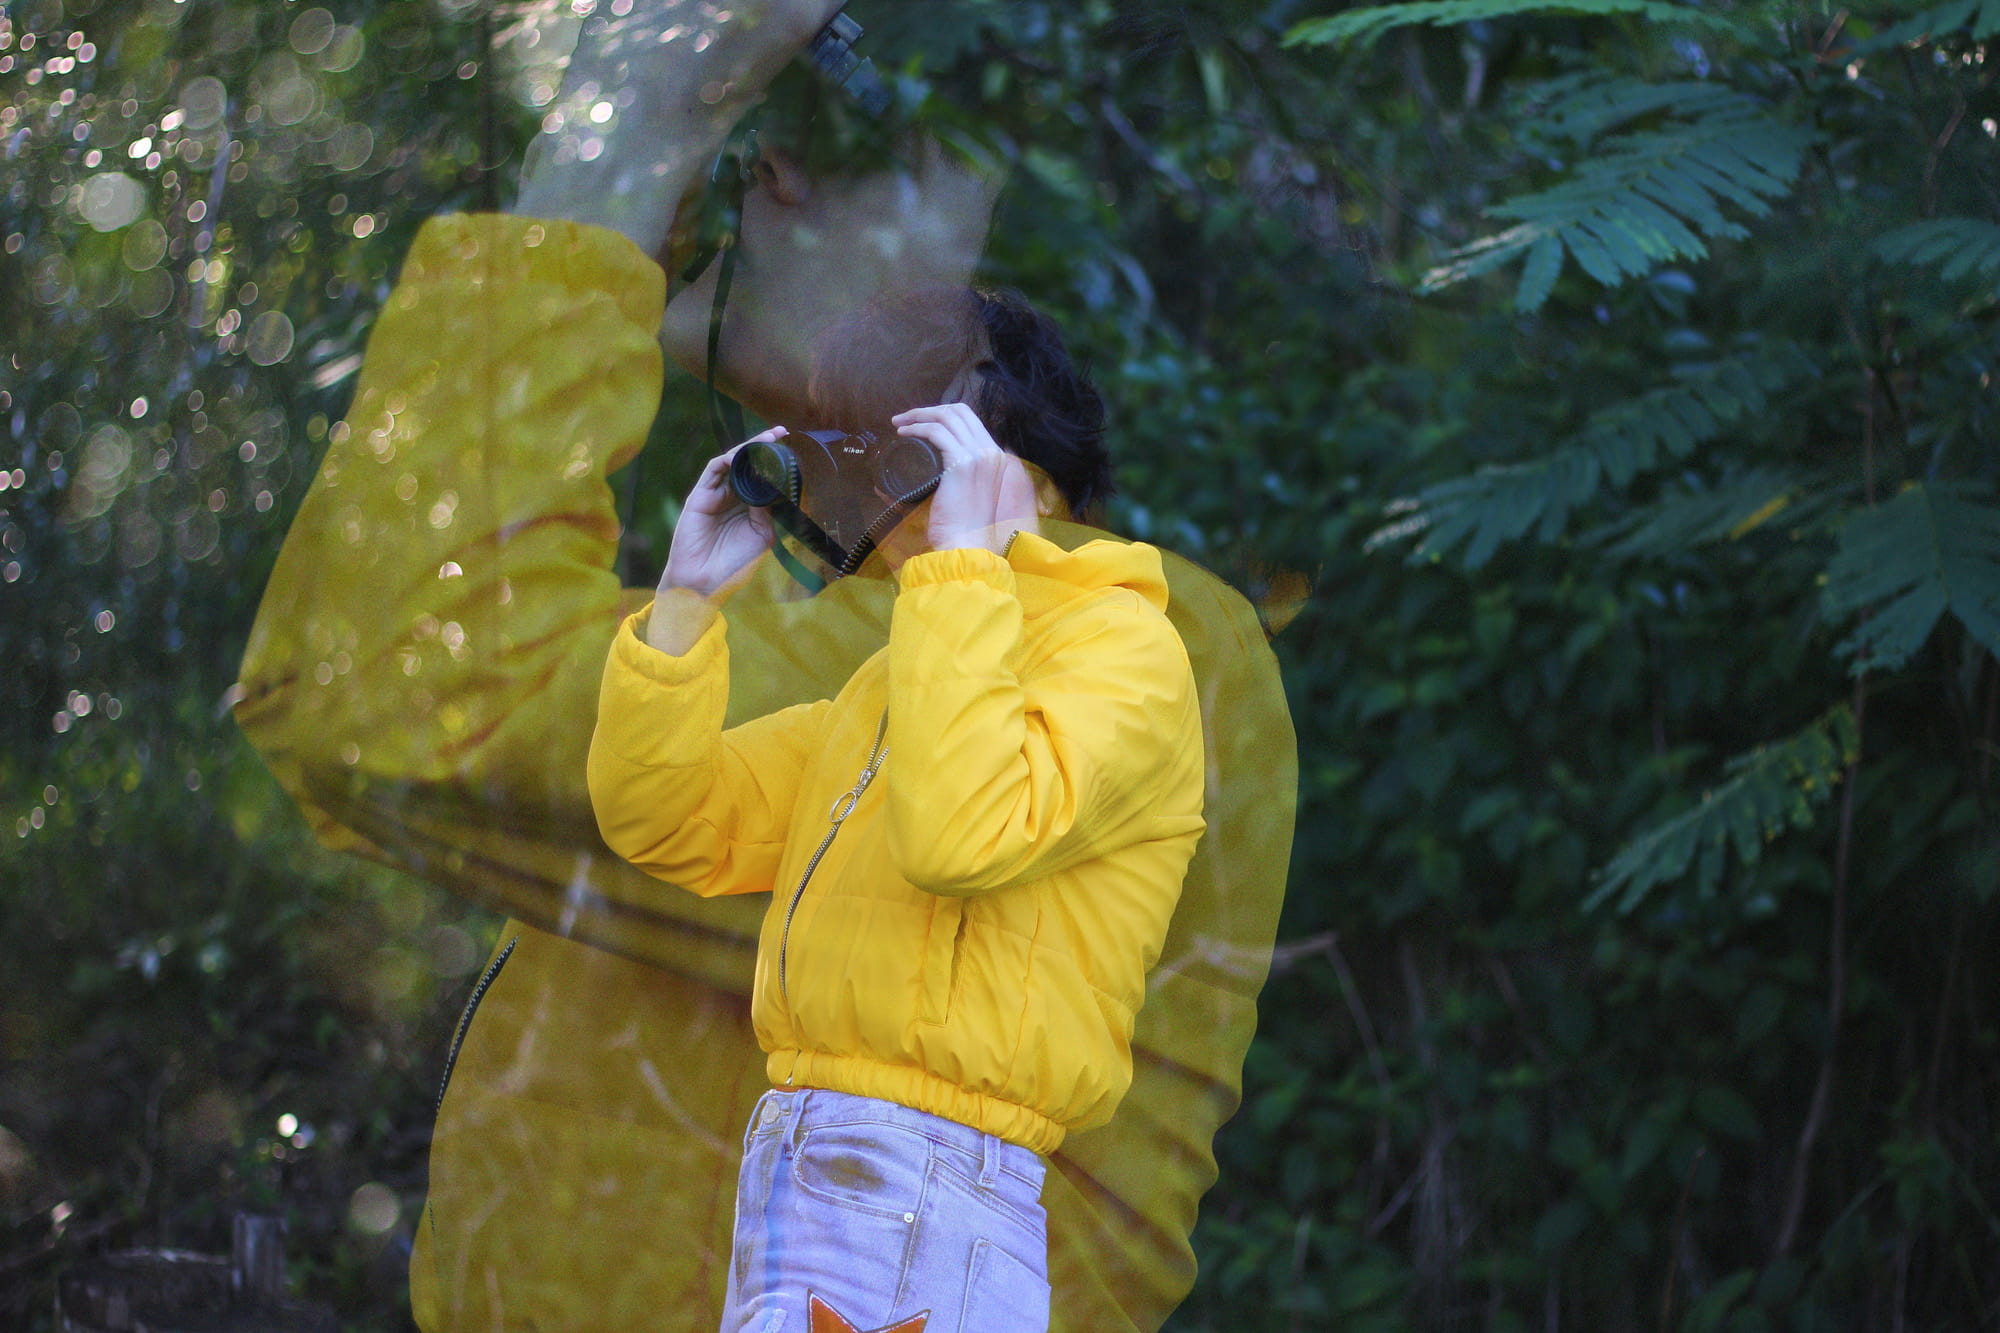 Portrait of a person in a yellow jacket by Sky Crosby